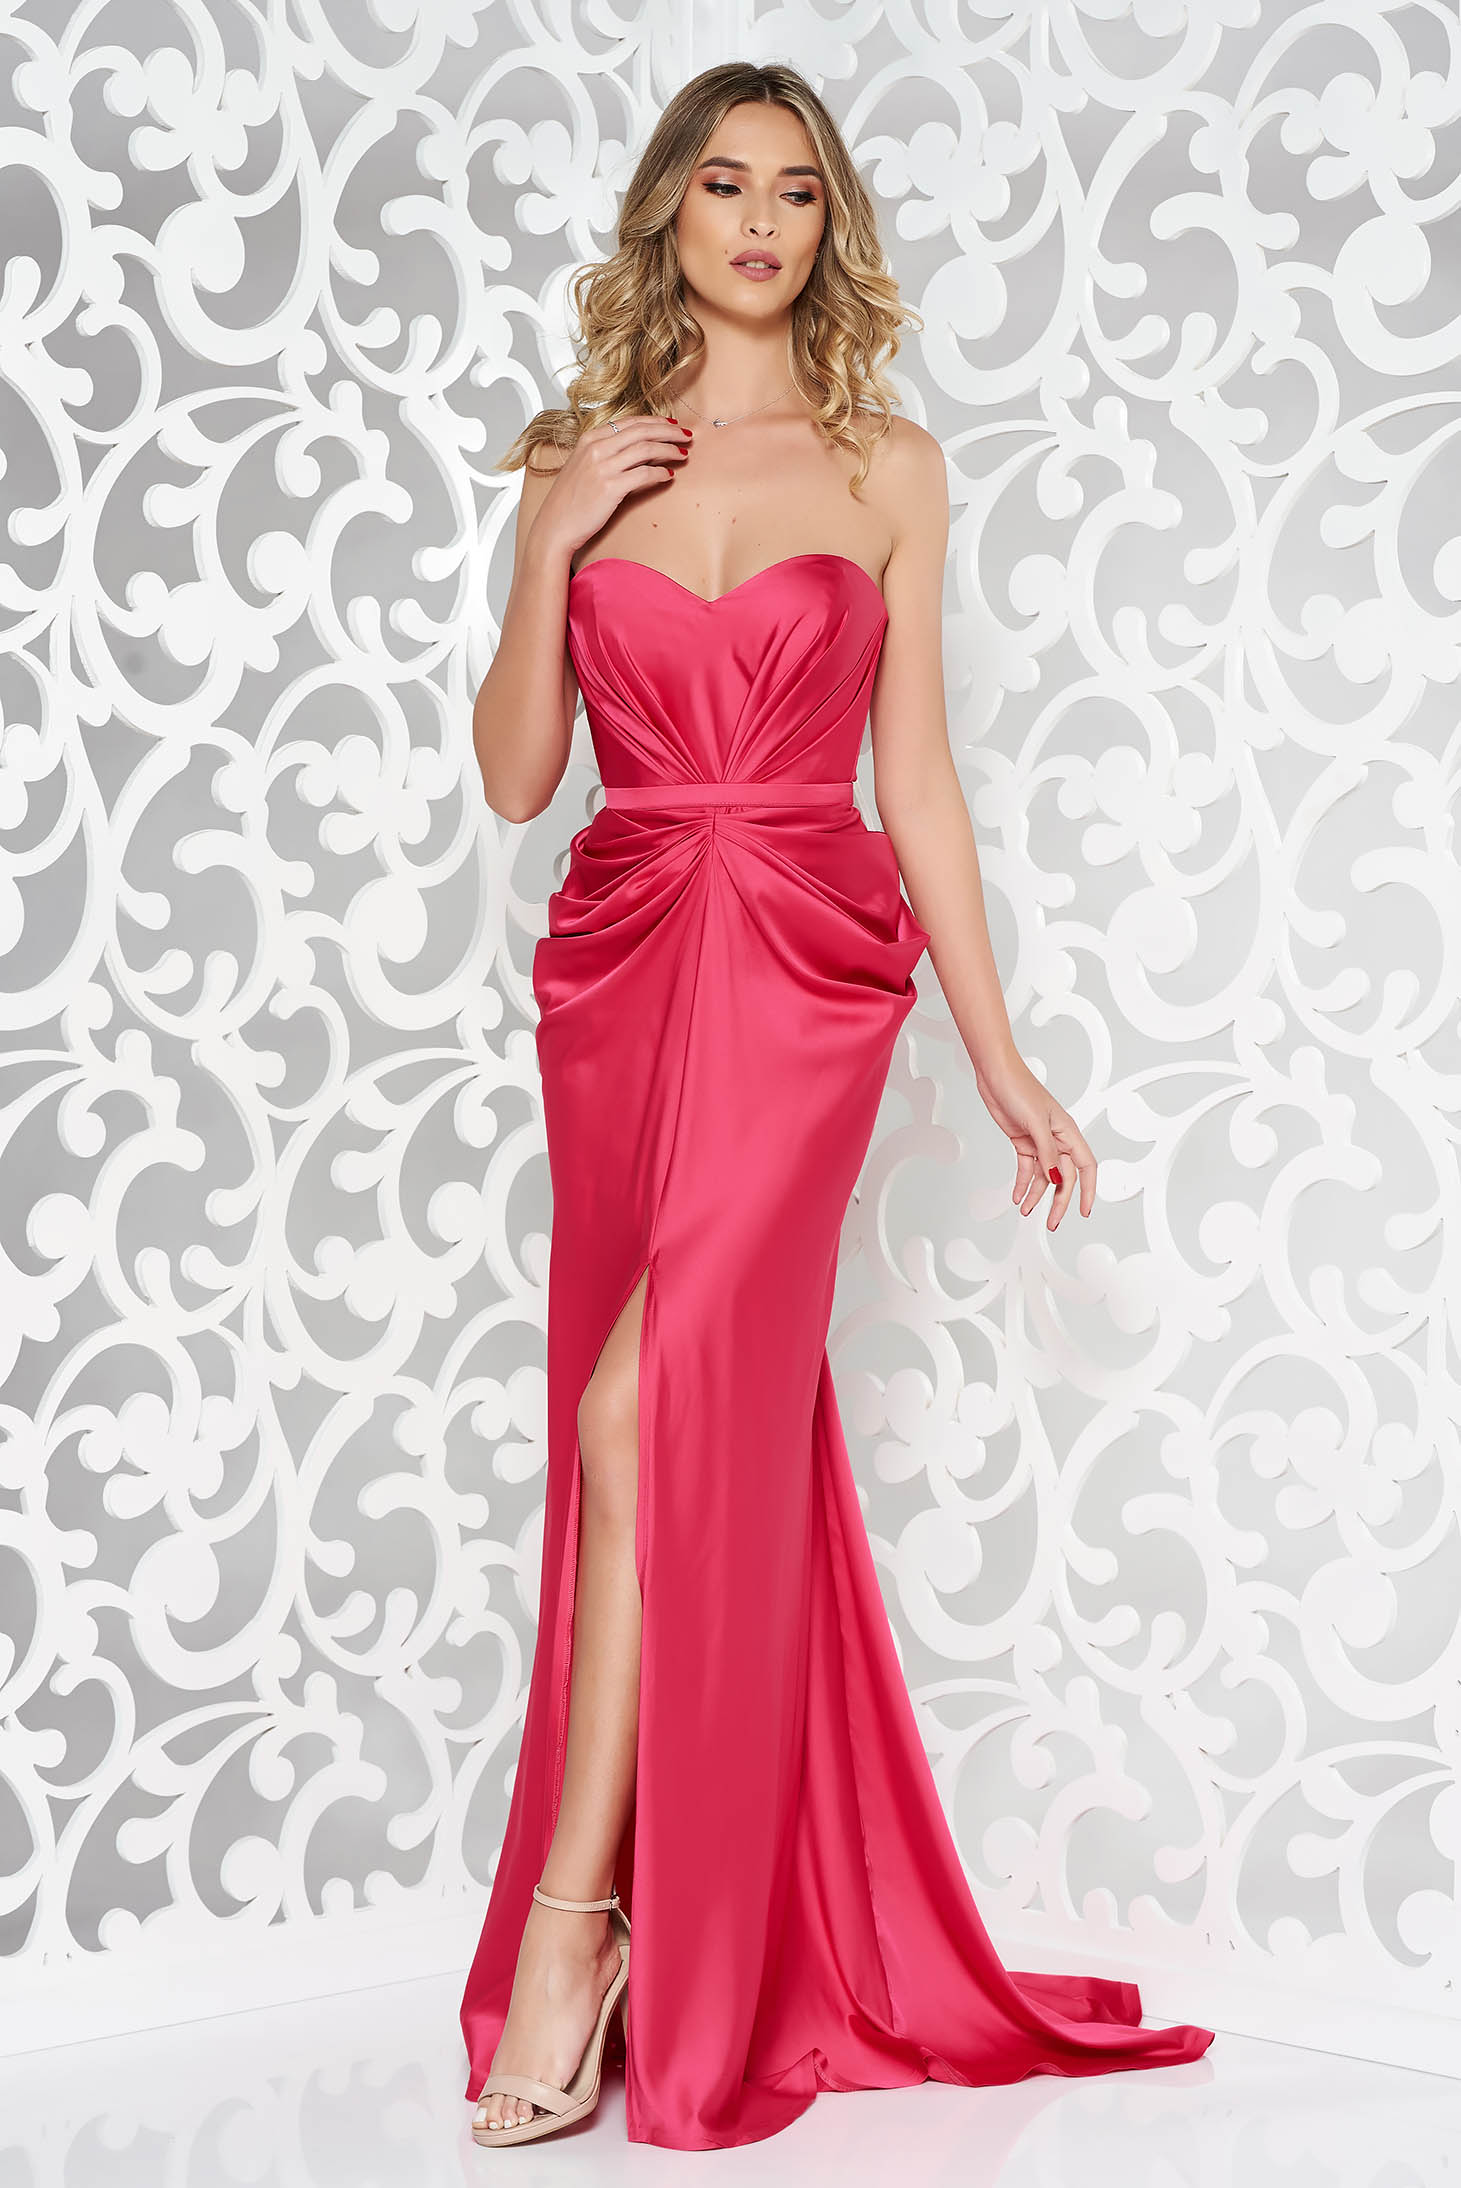 Ana Radu luxurious off shoulder dress from satin fabric texture with push-up bra accessorized with tied waistband fuchsia